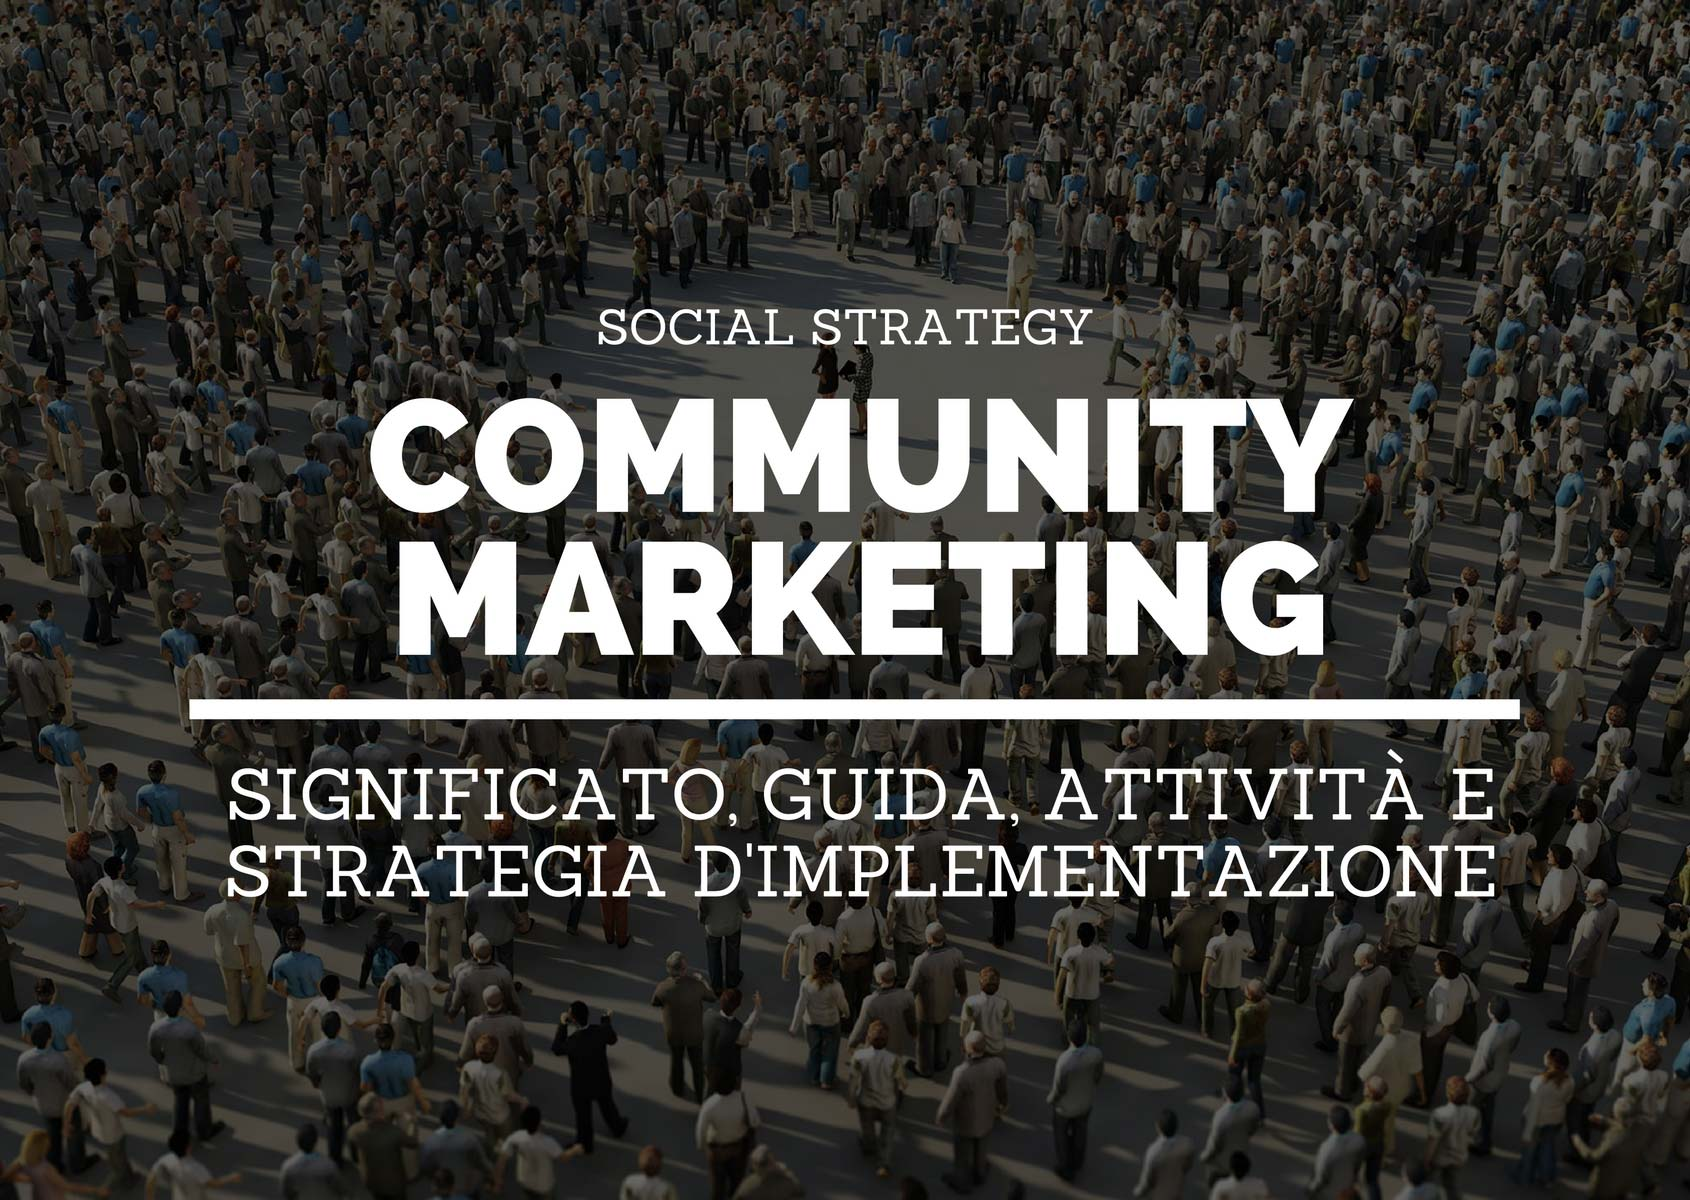 community-marketing-03a.jpg